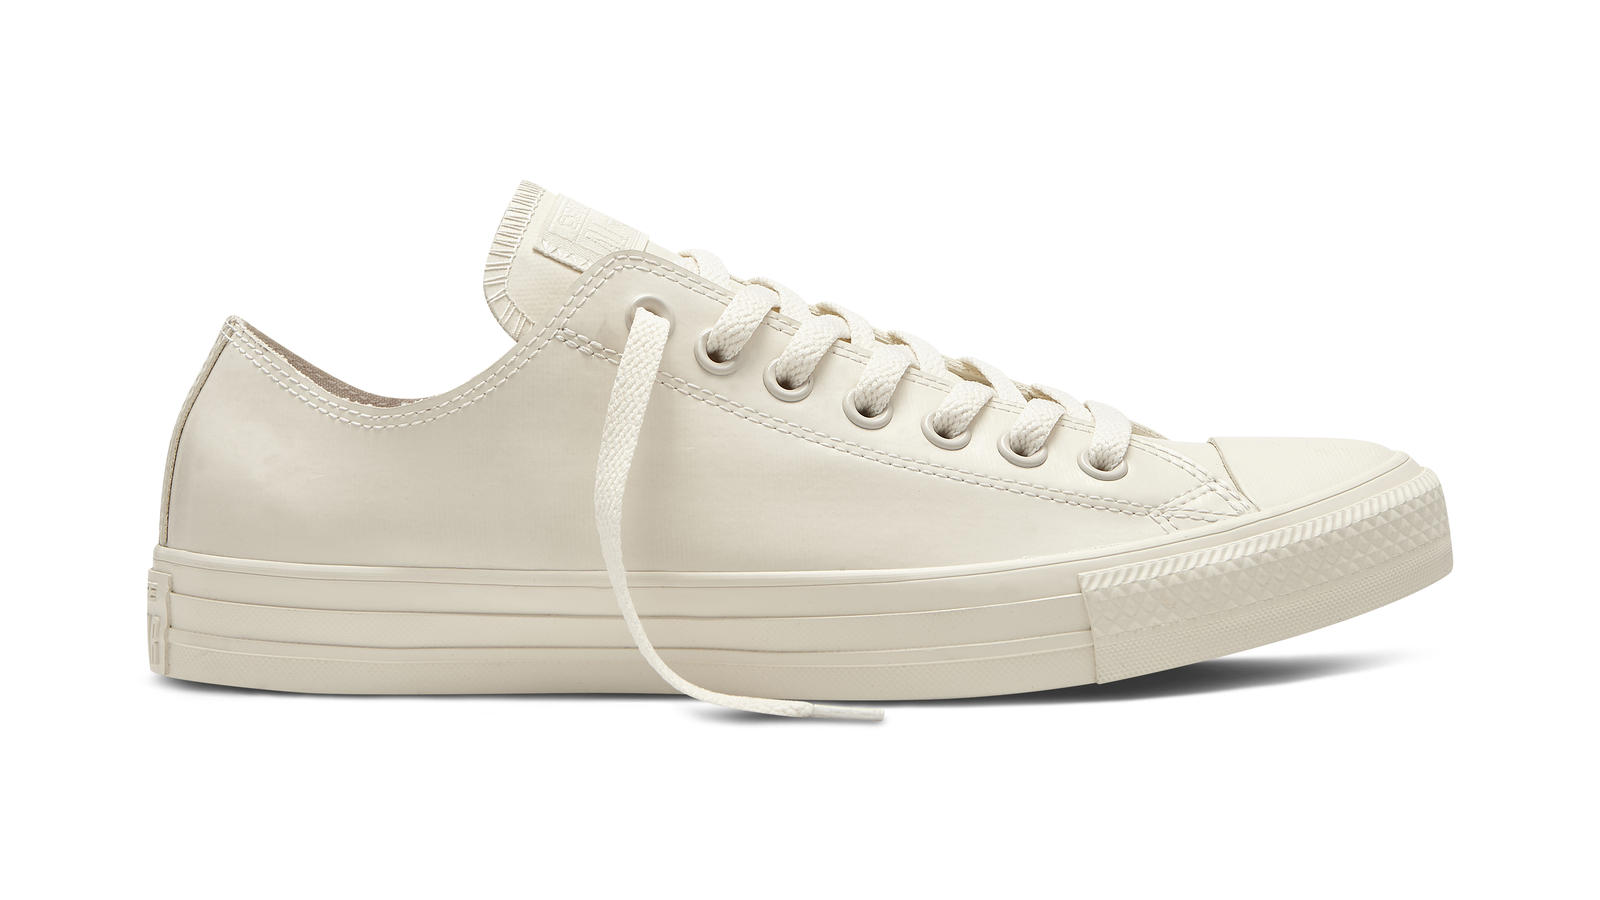 Converse Chuck Taylor All Star Ox   White Original